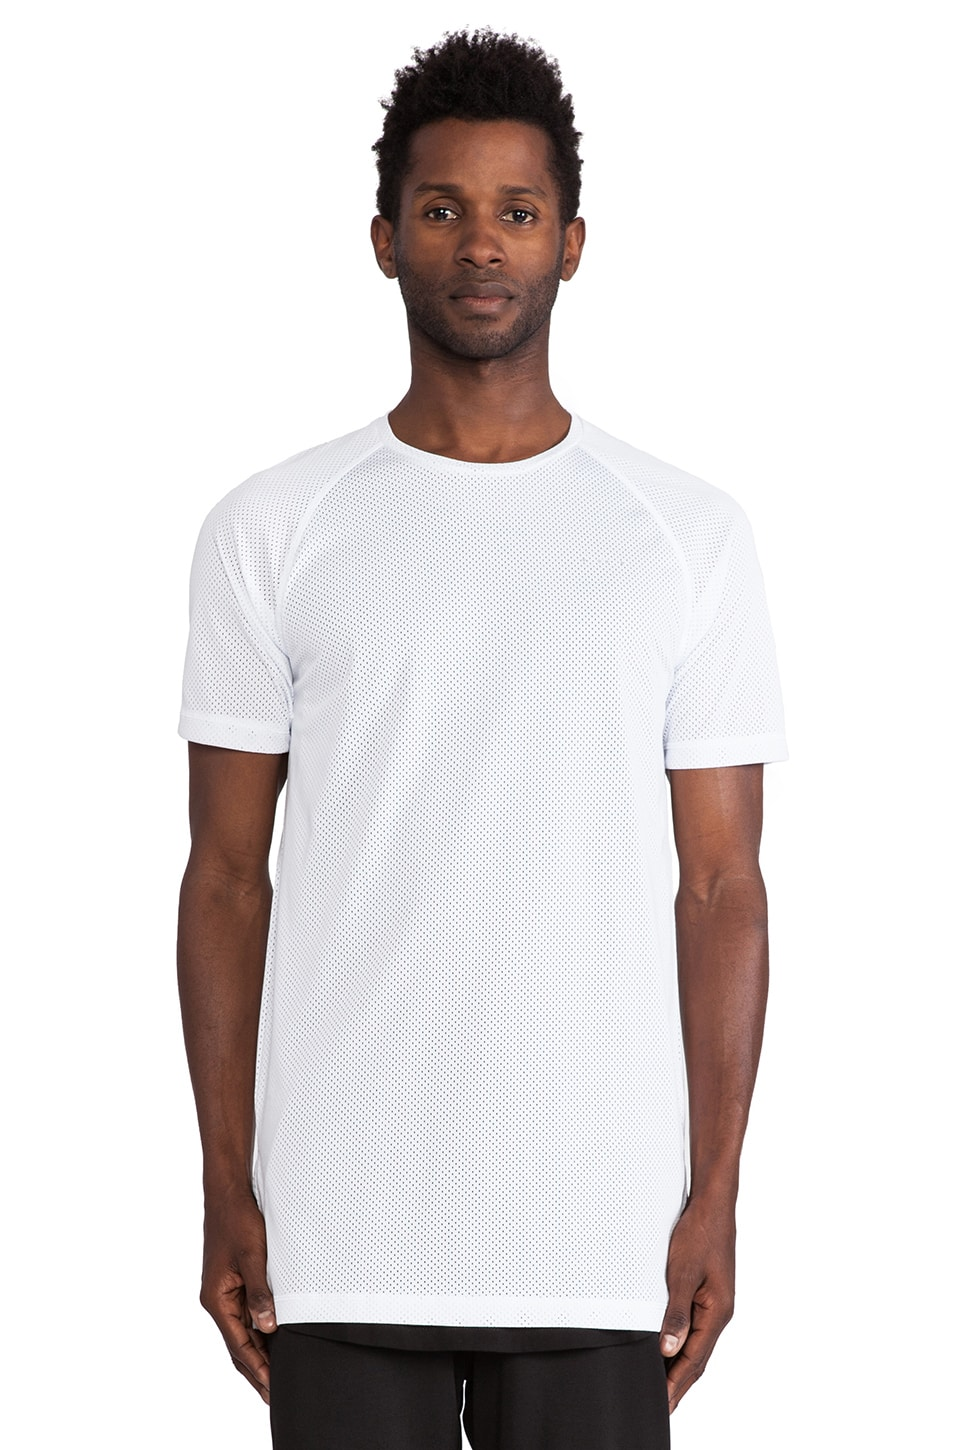 Publish MONO Denroy Jersey Tee in White